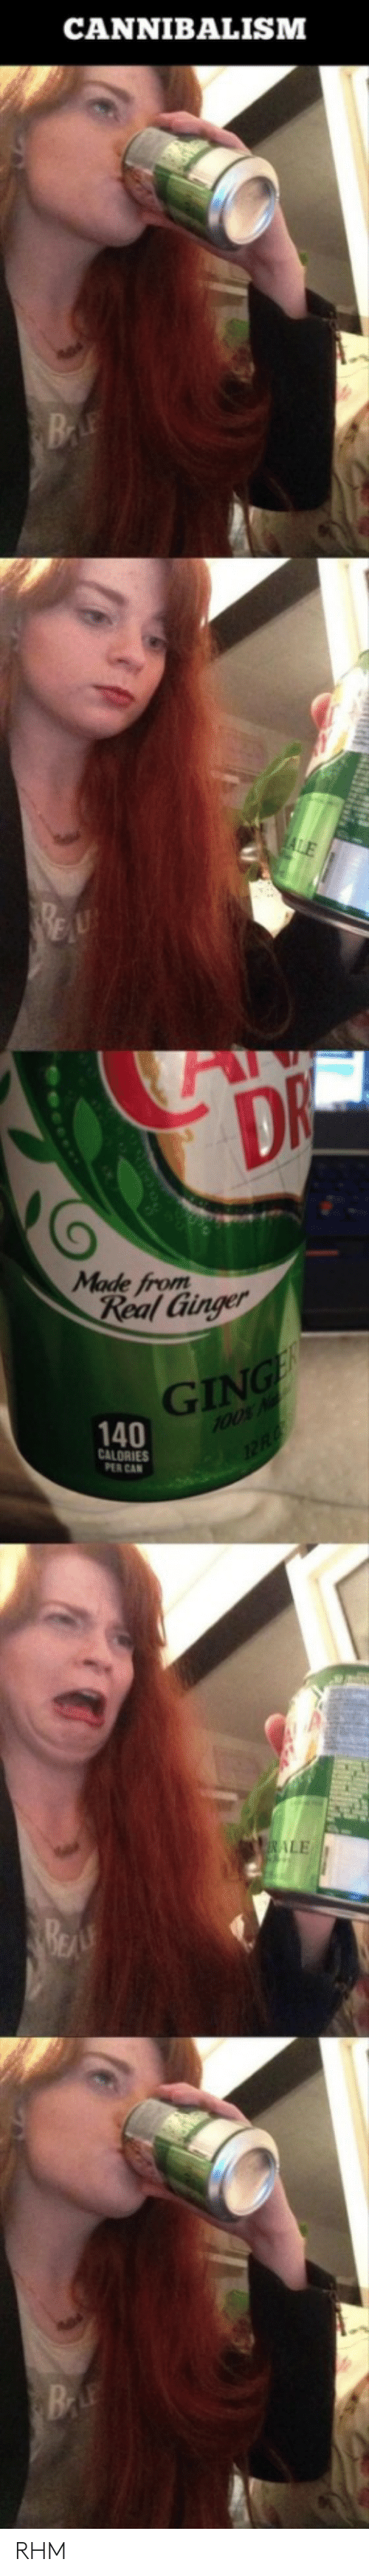 Ginger, Can, and Ale: CANNIBALISM  BE  DR  Made from  Real Ginger  GING  140  100% N  12F  CALORIES  PER CAN  ALE  BE RHM